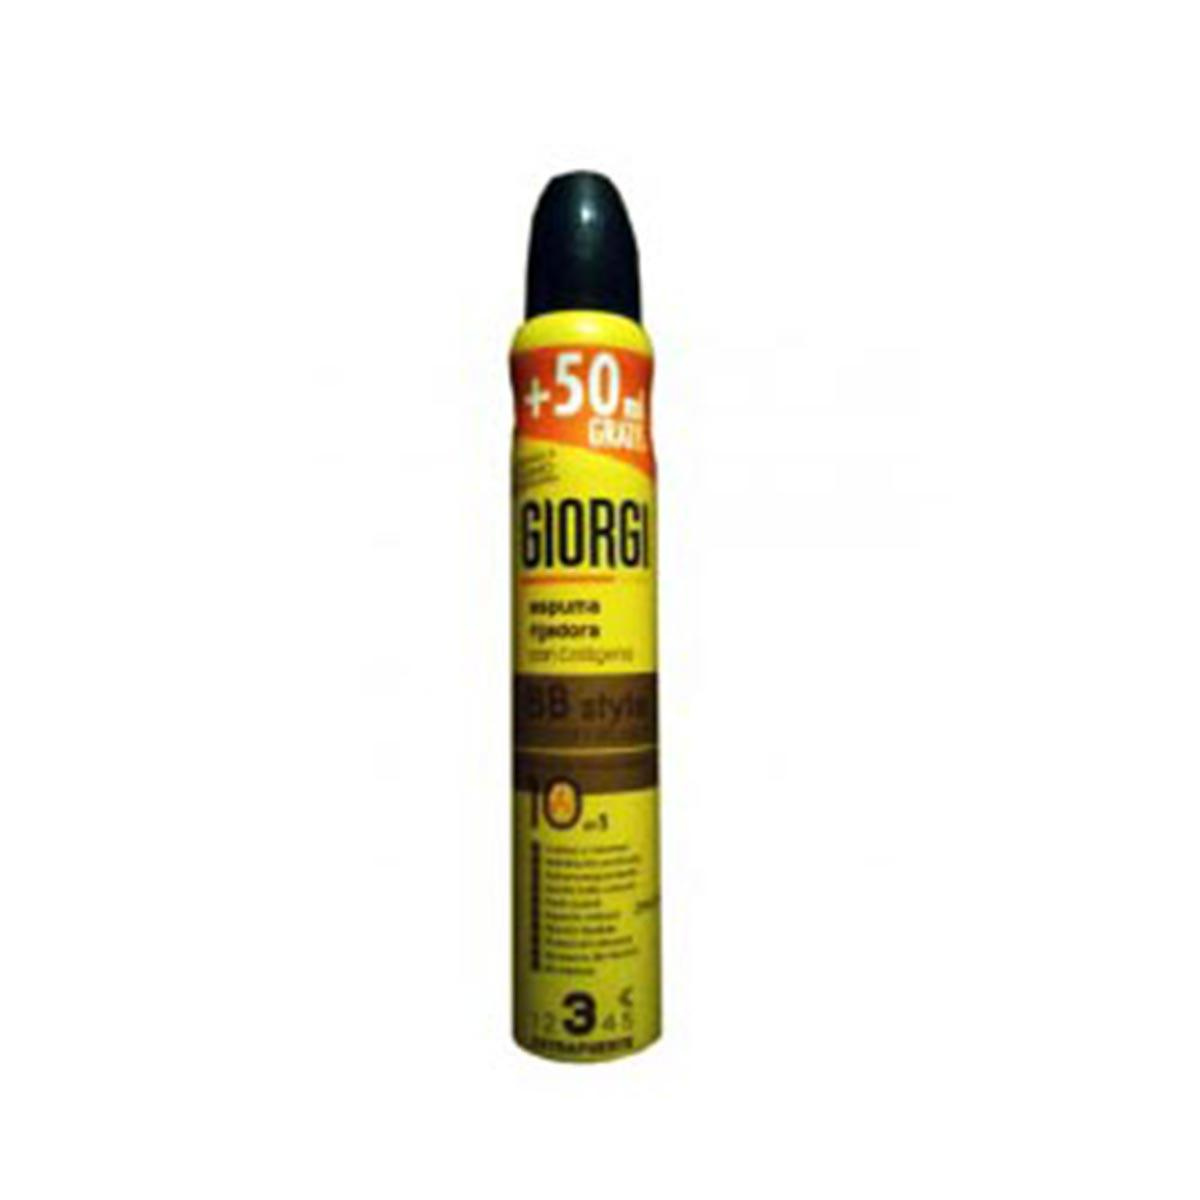 Consumo fragrances Giorgi Fixing Foam 250ml